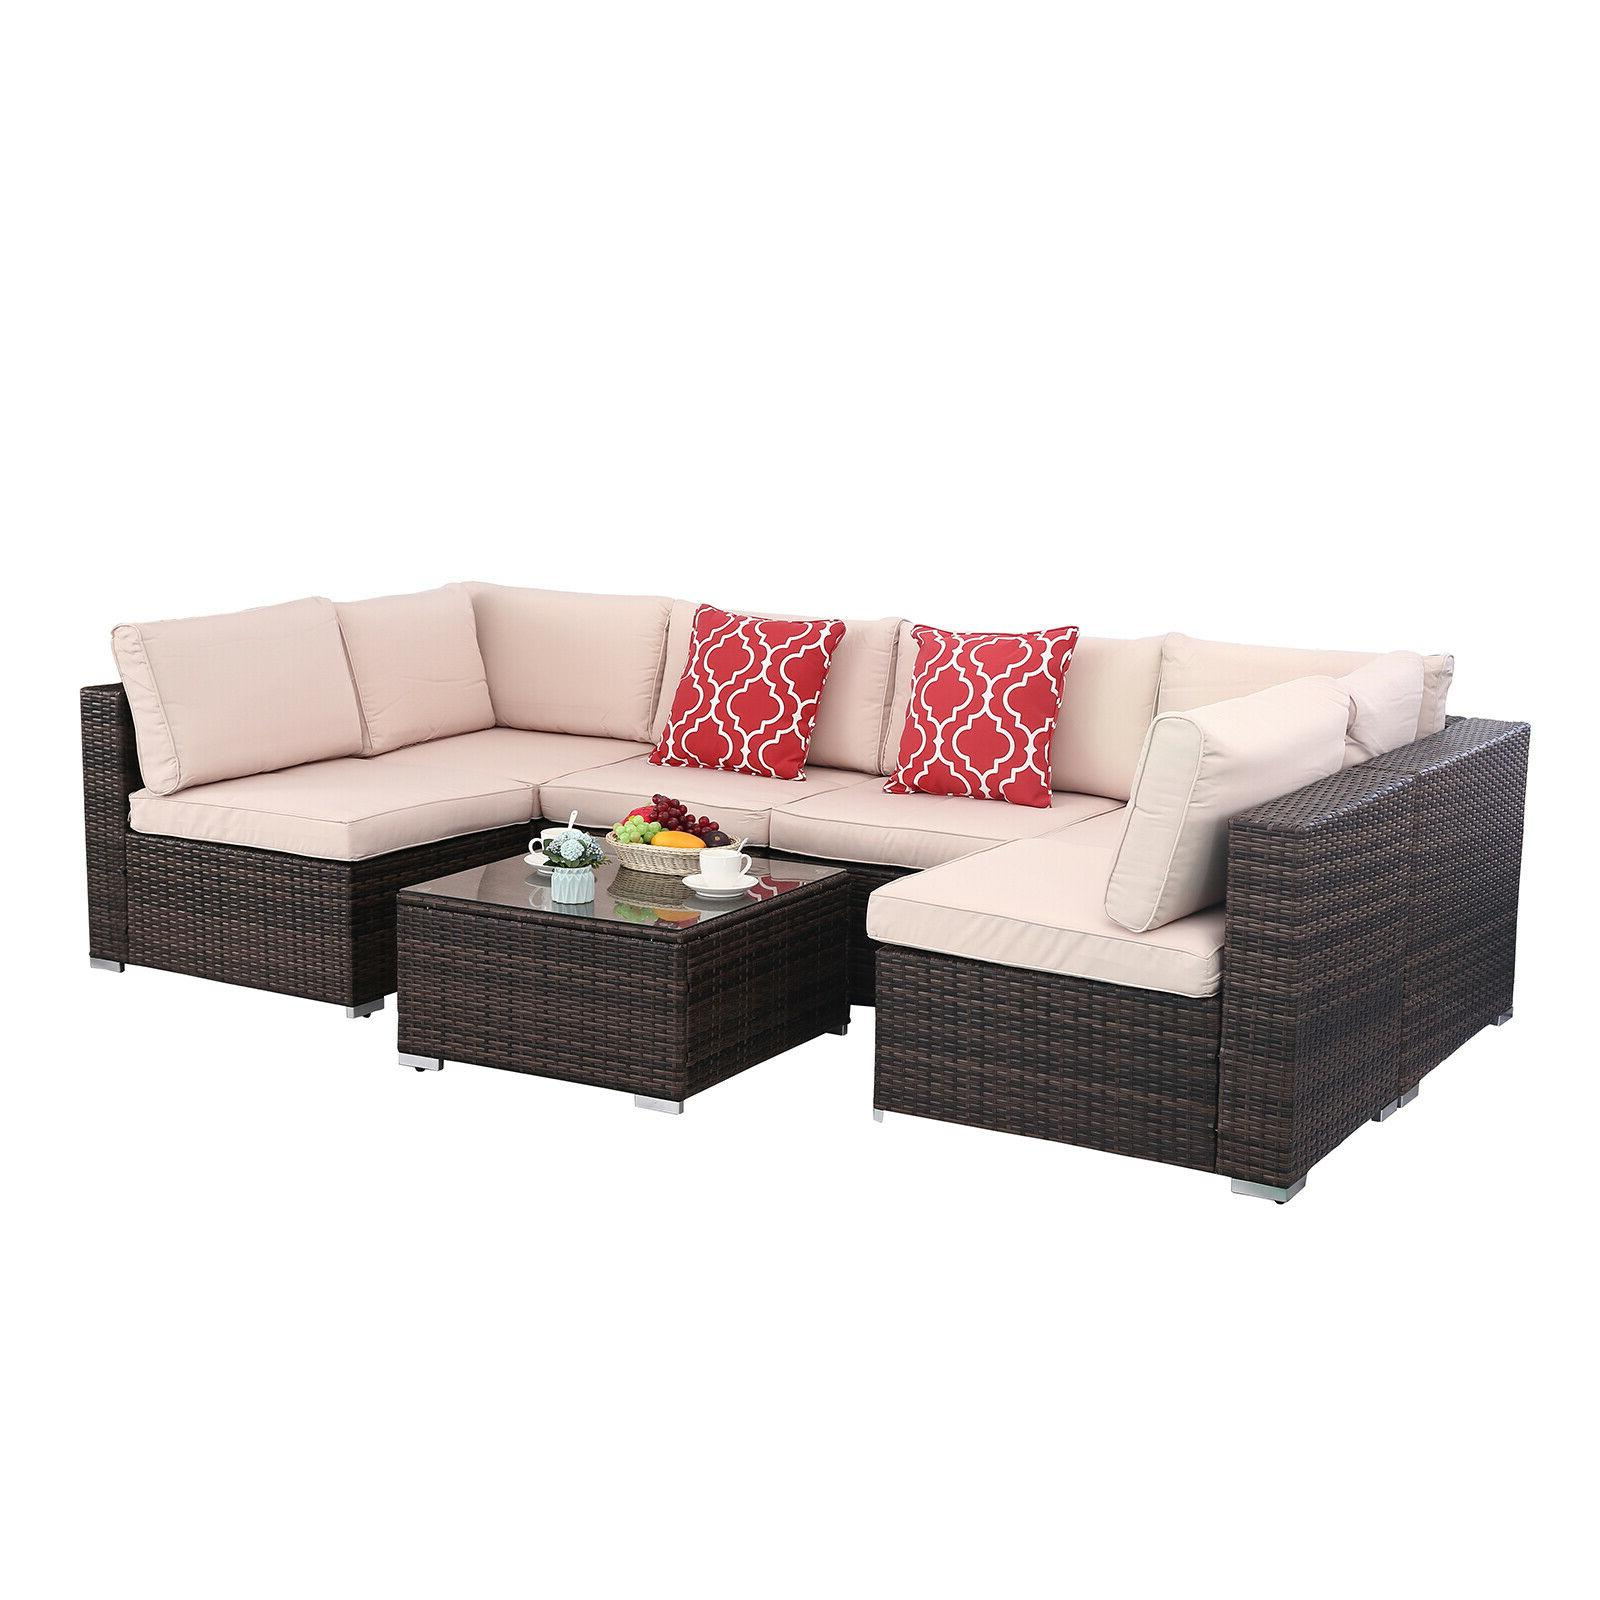 7pcs Outdoor Set Rattan Sectional Furniture Outside Couch